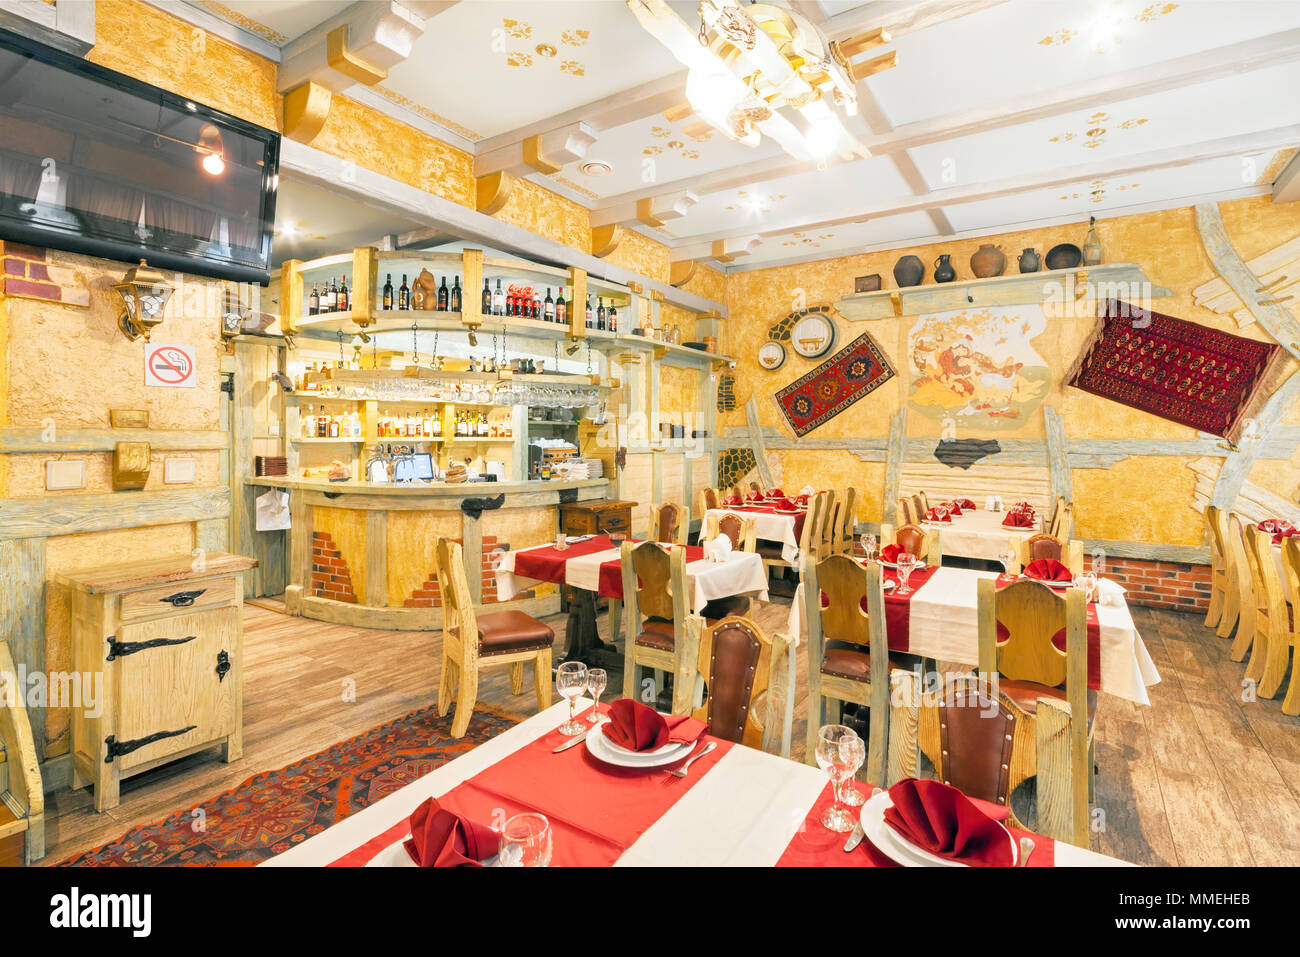 Moscow August 2014 Interior Of The Restaurant Rio Grande Hall Of Yellow Color Decorated In A Farmer S Style With Wooden Furniture Wooden Bar C Stock Photo Alamy